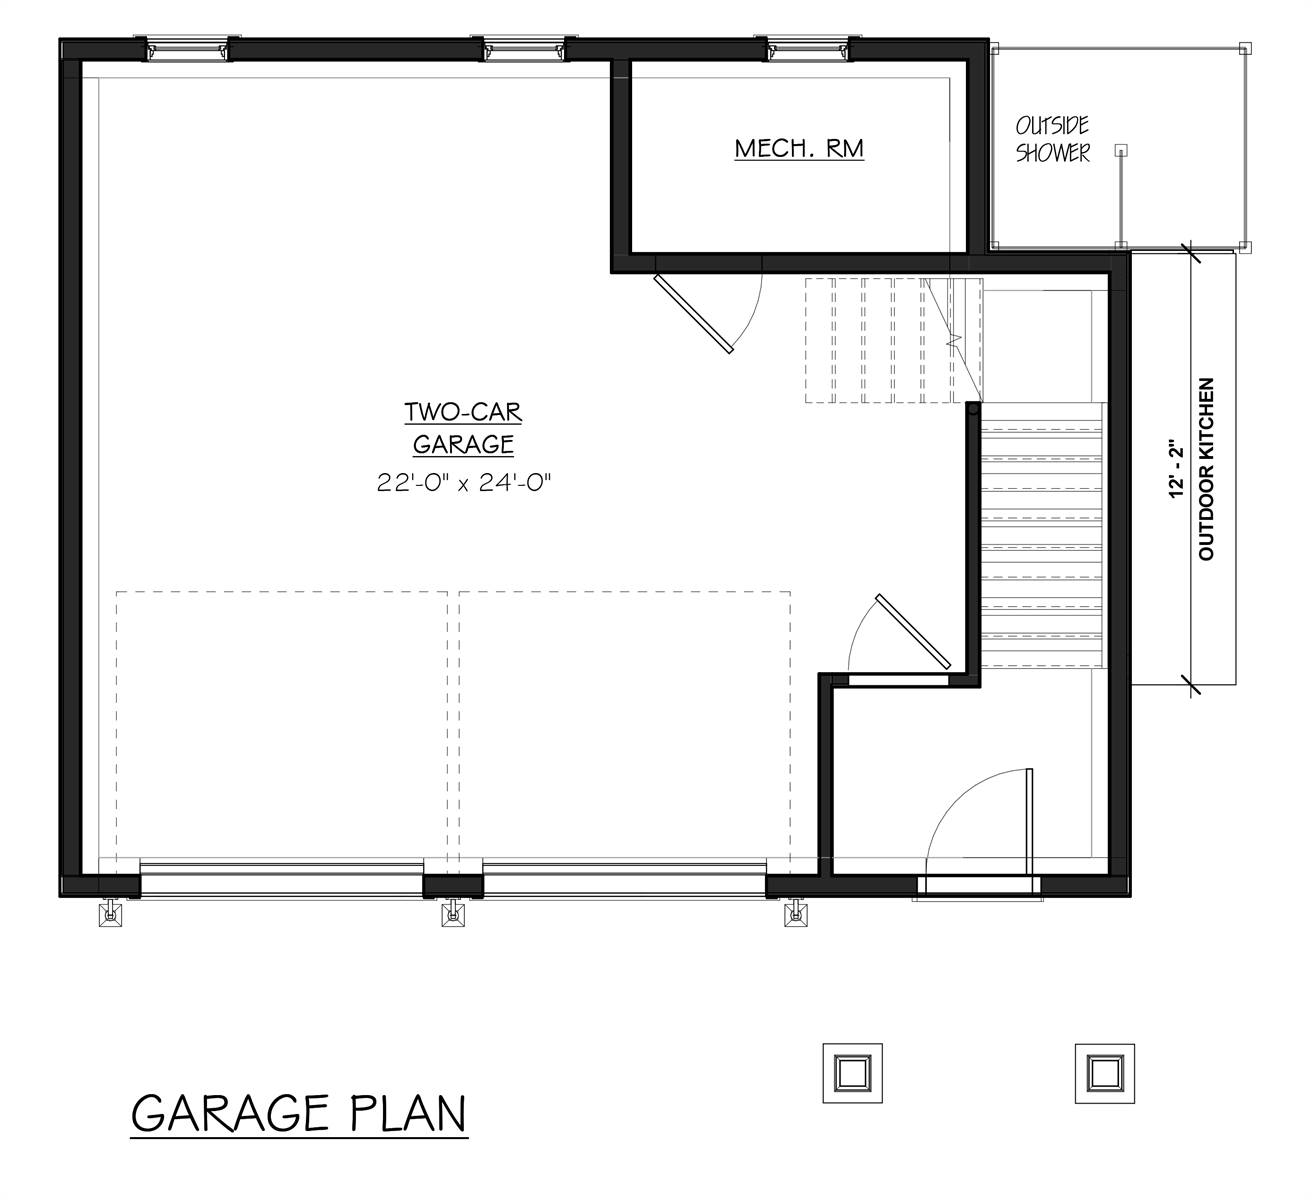 Garage Floor Plan